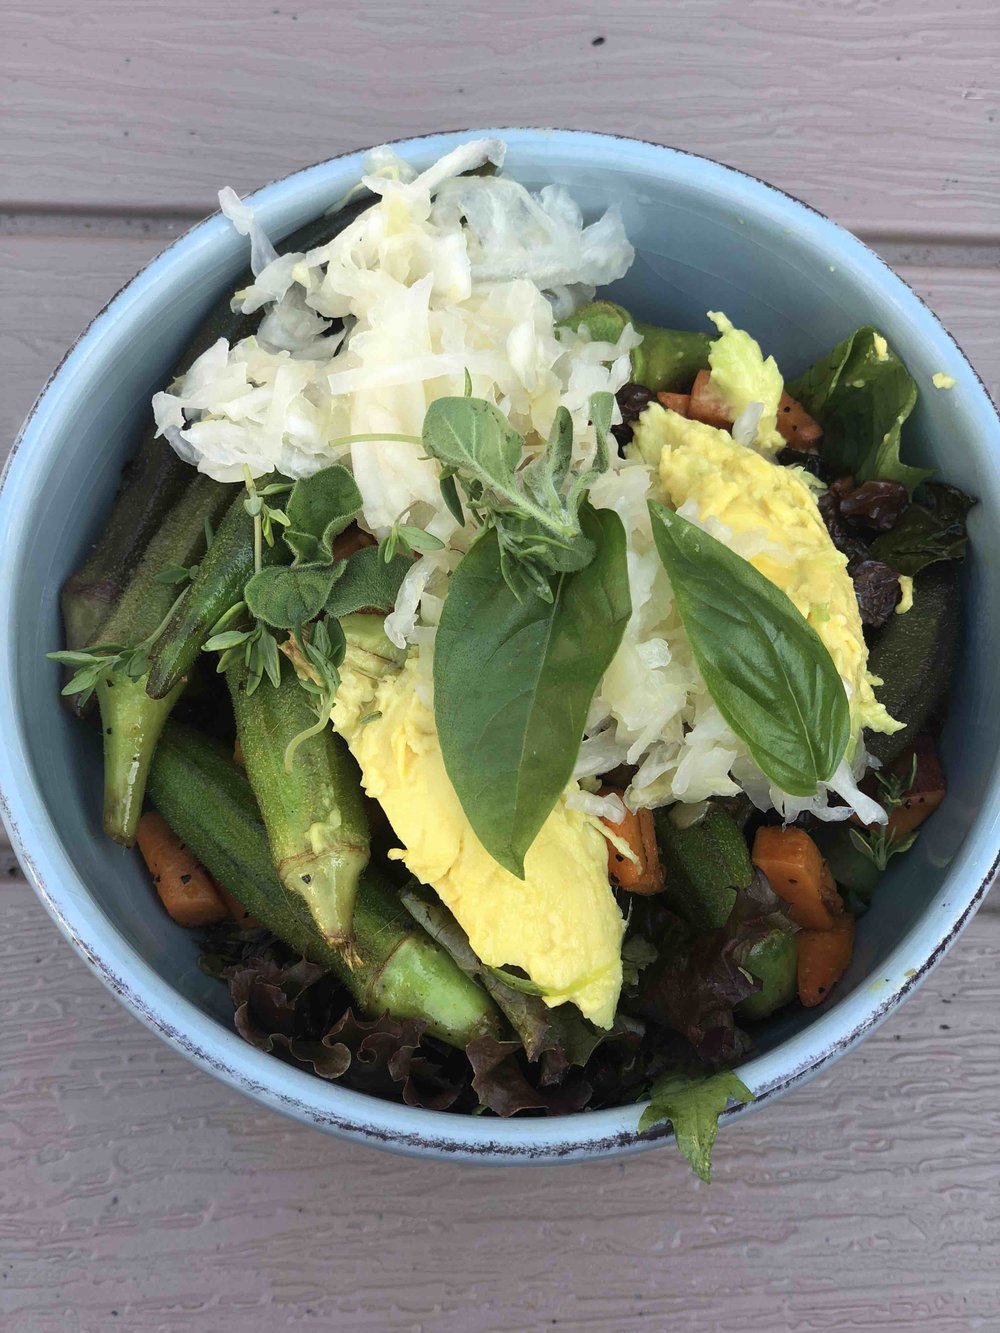 Okra Bowl with sauerkraut, avocado, sweet potato and farmers market lettuce topped with garden herbs